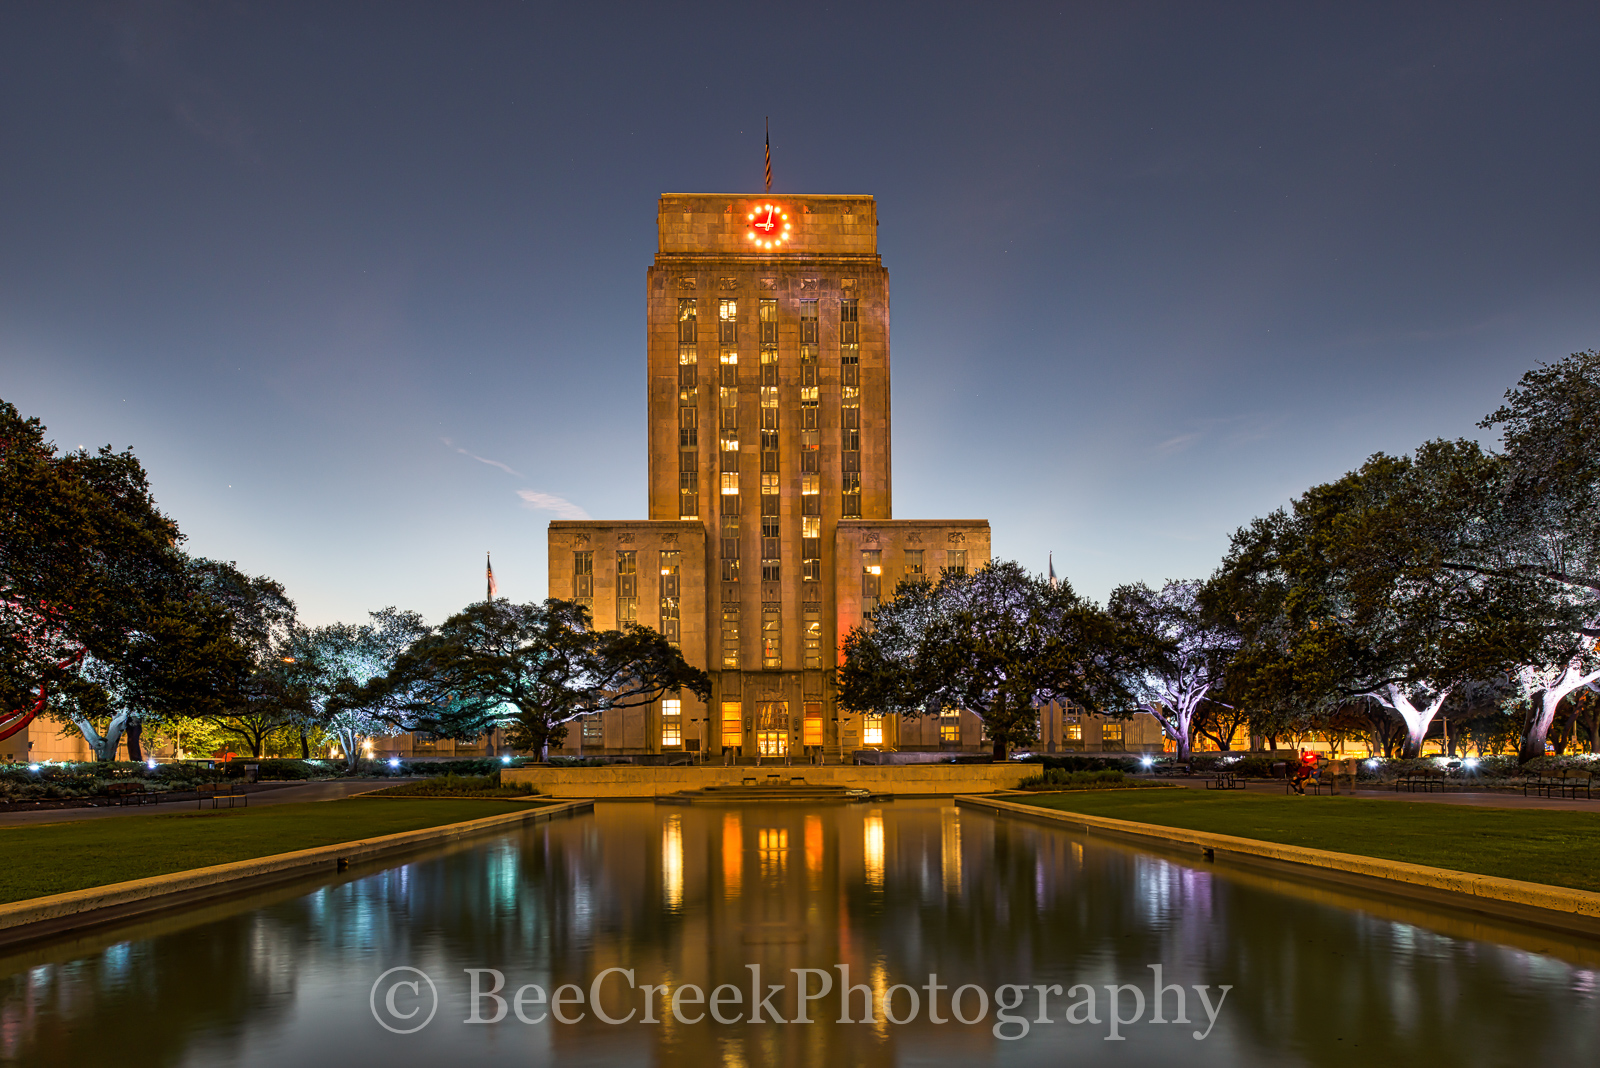 City Hall, Houston, cities, city, cityscape, cityscapes, downtown, high rise, night, nightscape, skyscrapers, urban, photo